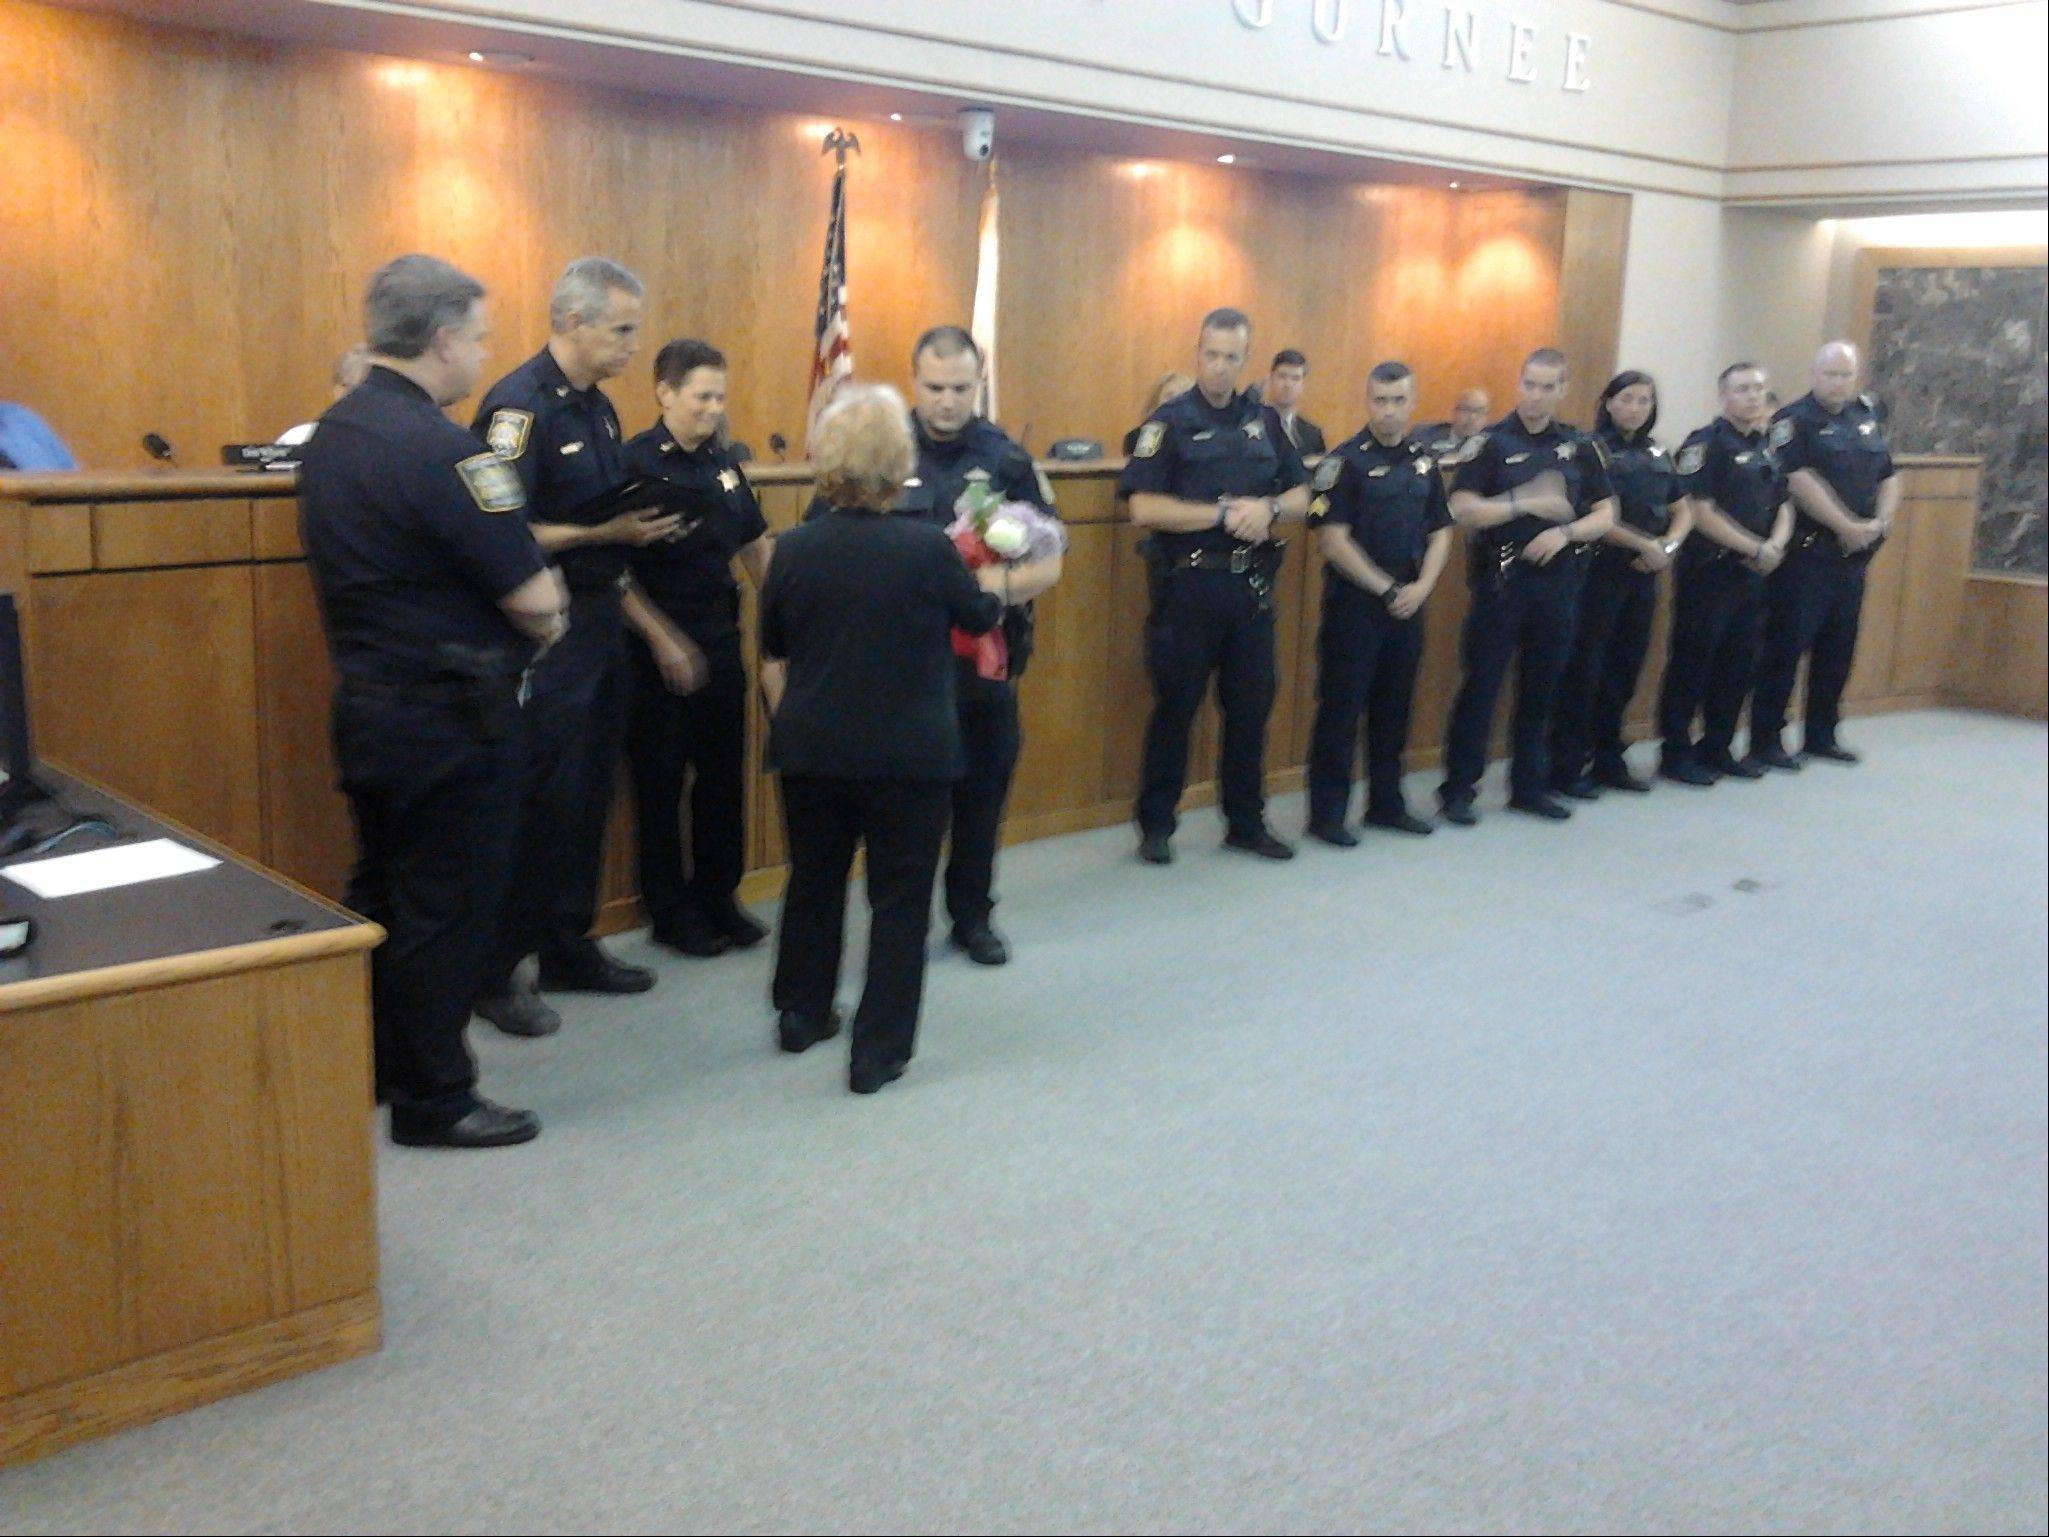 Alliance Against Intoxicated Motorists court watch director Cathy Stanley presents flowers to Gurnee police officer J.R. Nauseda at a ceremony Monday night. Nauseda made the most DUI arrests in Gurnee in 2012.